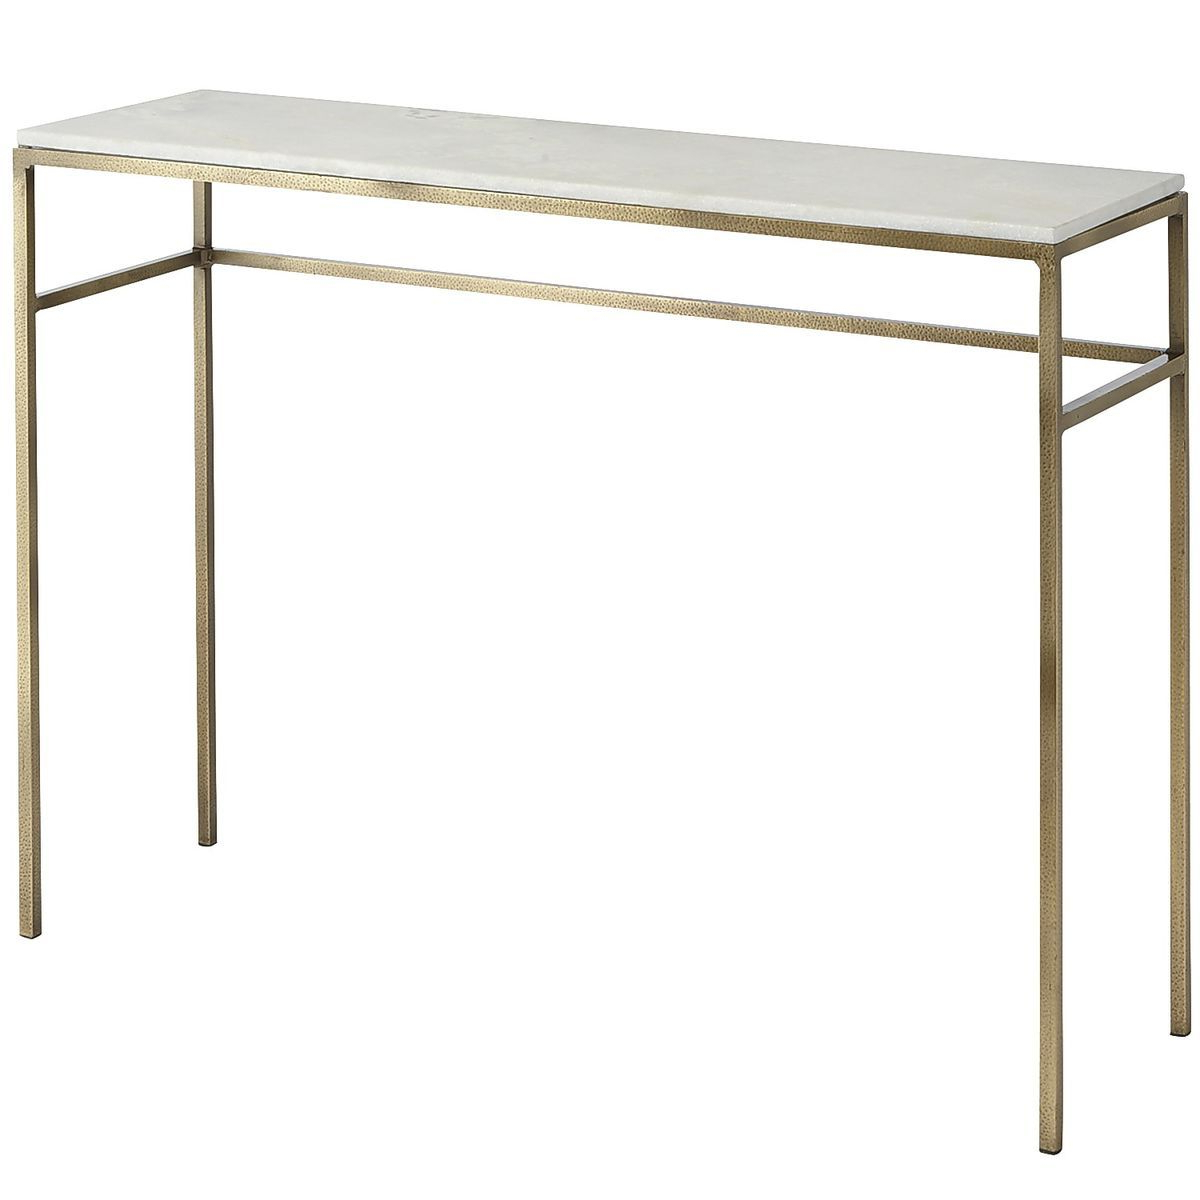 If You're Looking For A Way To Elevate Your Living Space, Ethel Intended For Elke Marble Console Tables With Brass Base (View 12 of 20)